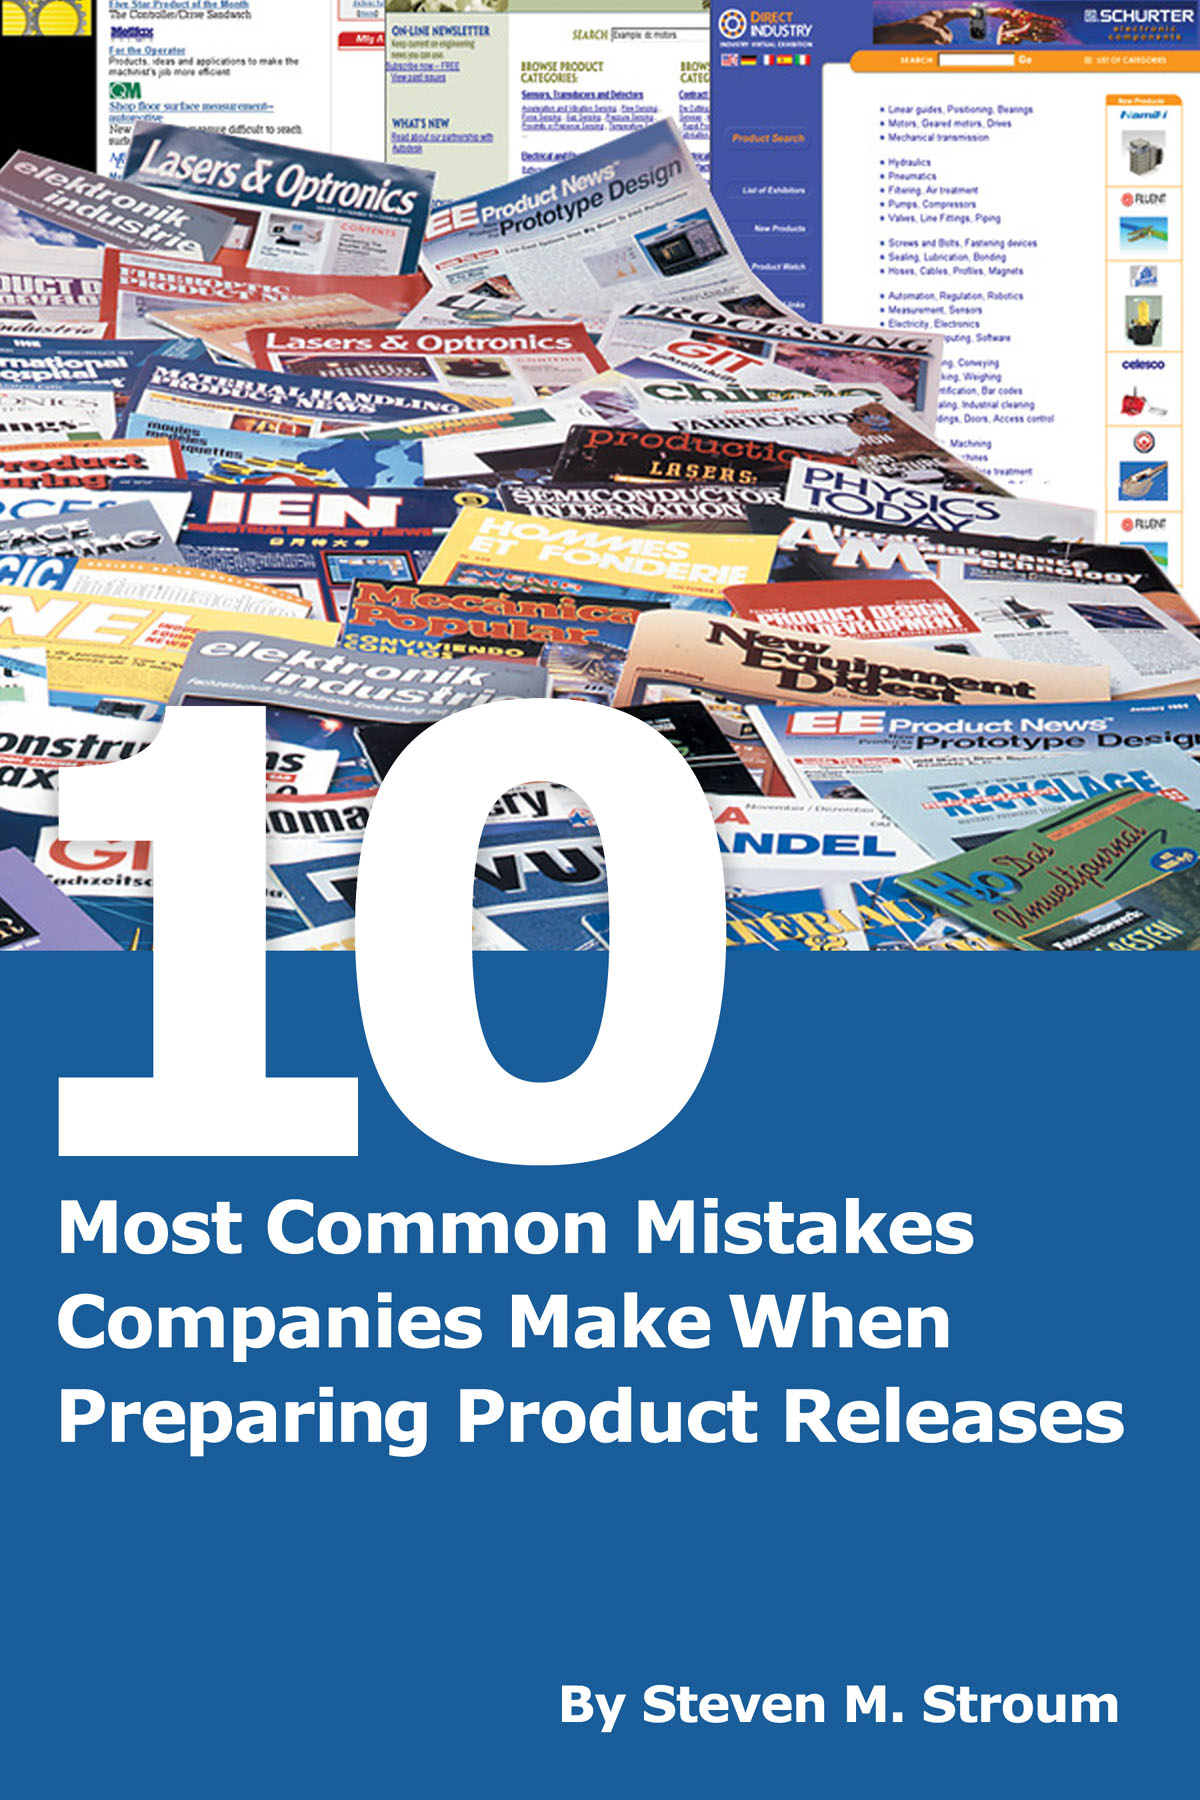 c1106c490 A concise booklet that describes the 10 most common and costly errors that  companies make when preparing product news releases and how to prevent them  is ...